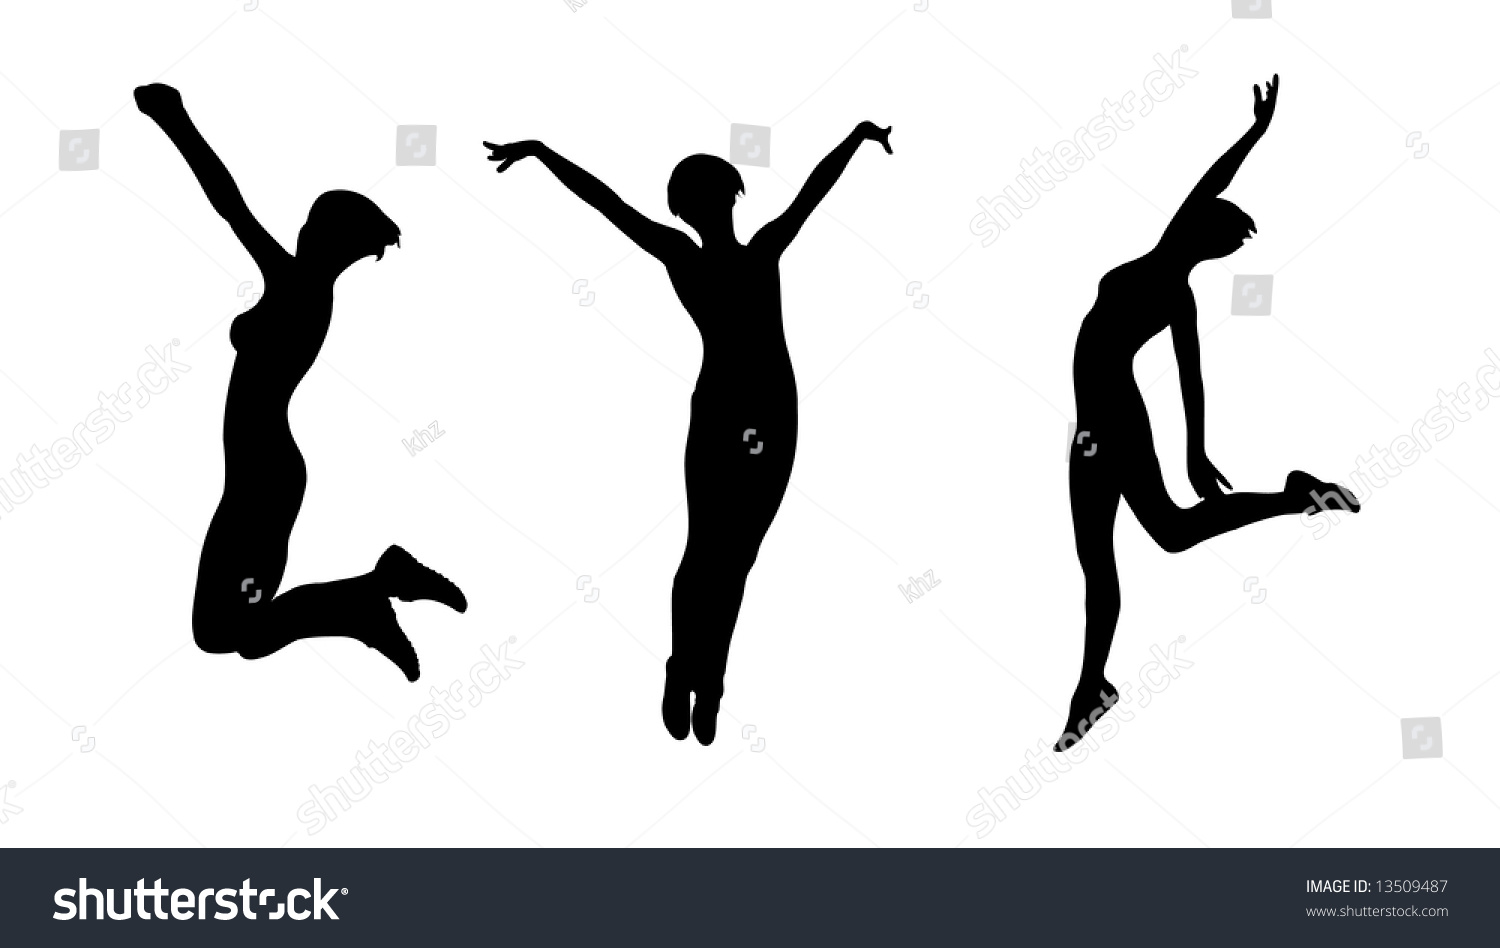 Happy Women Jumping High Vector Silhouettes - 13509487 ...